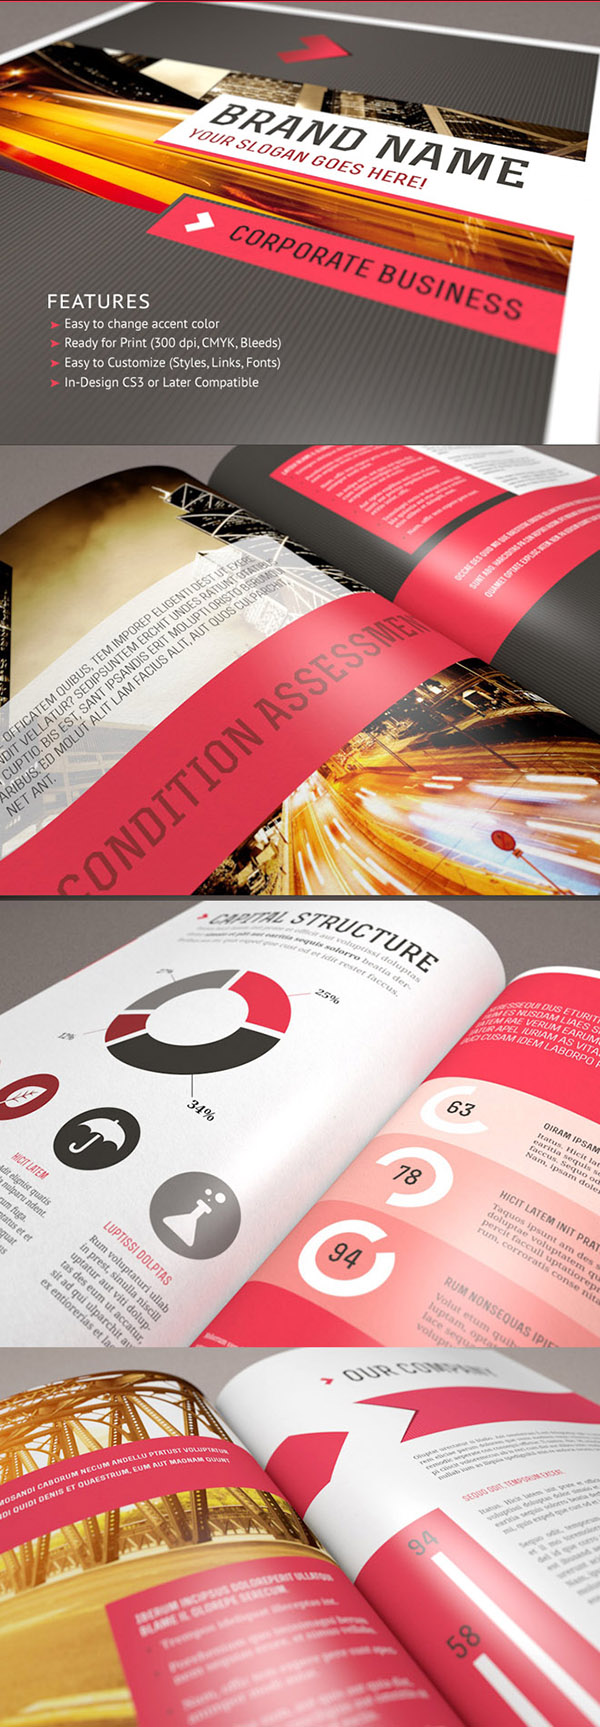 17-corporate-brochure-design-24